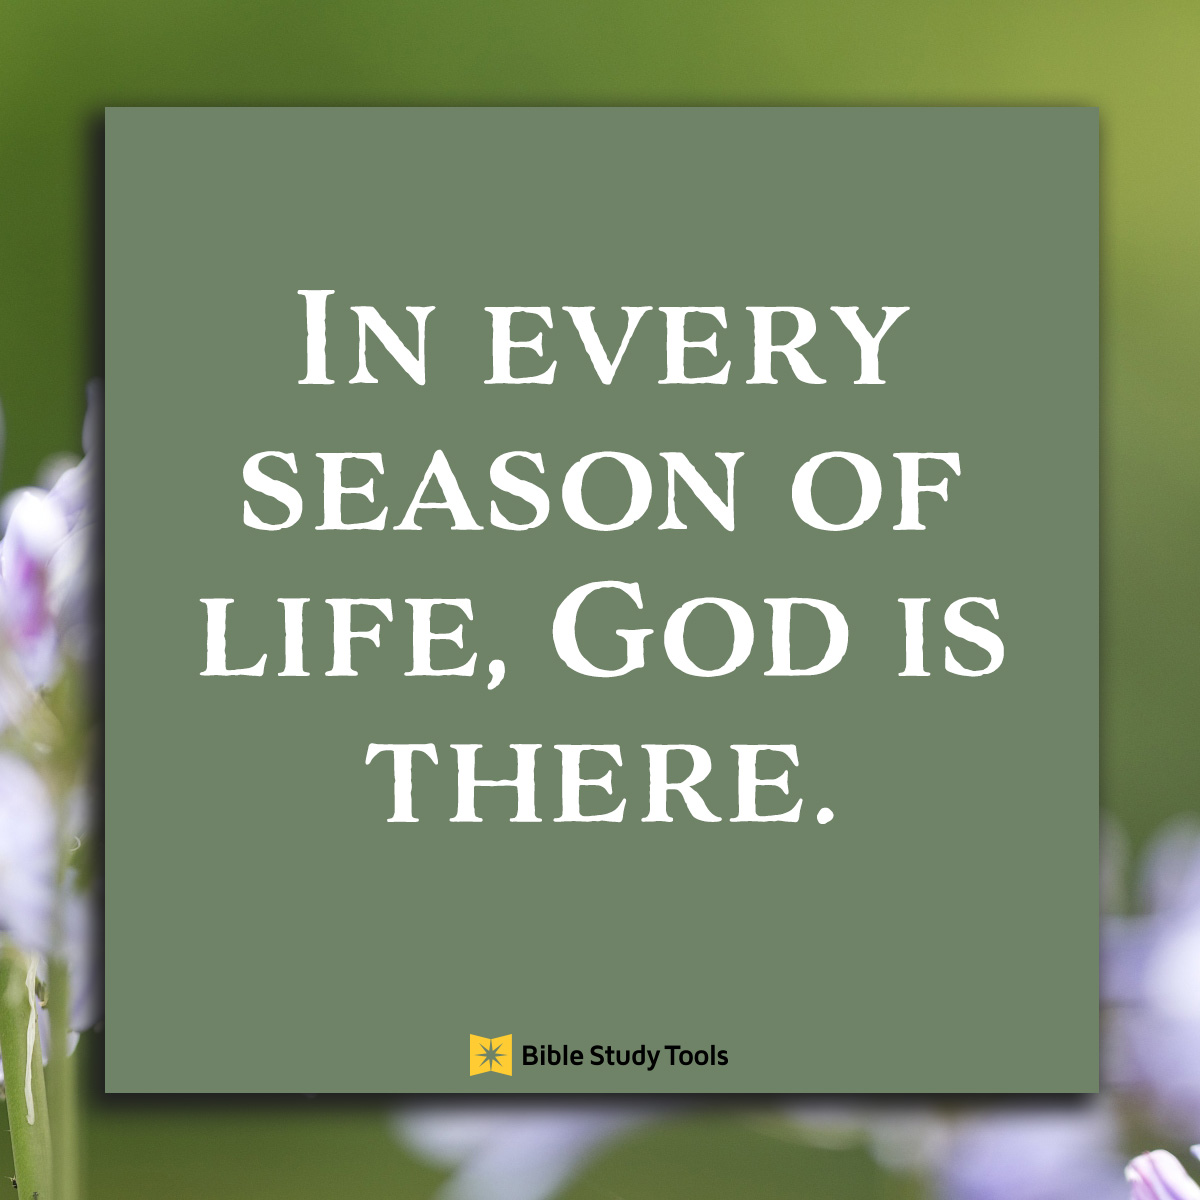 God is there, inspirational image